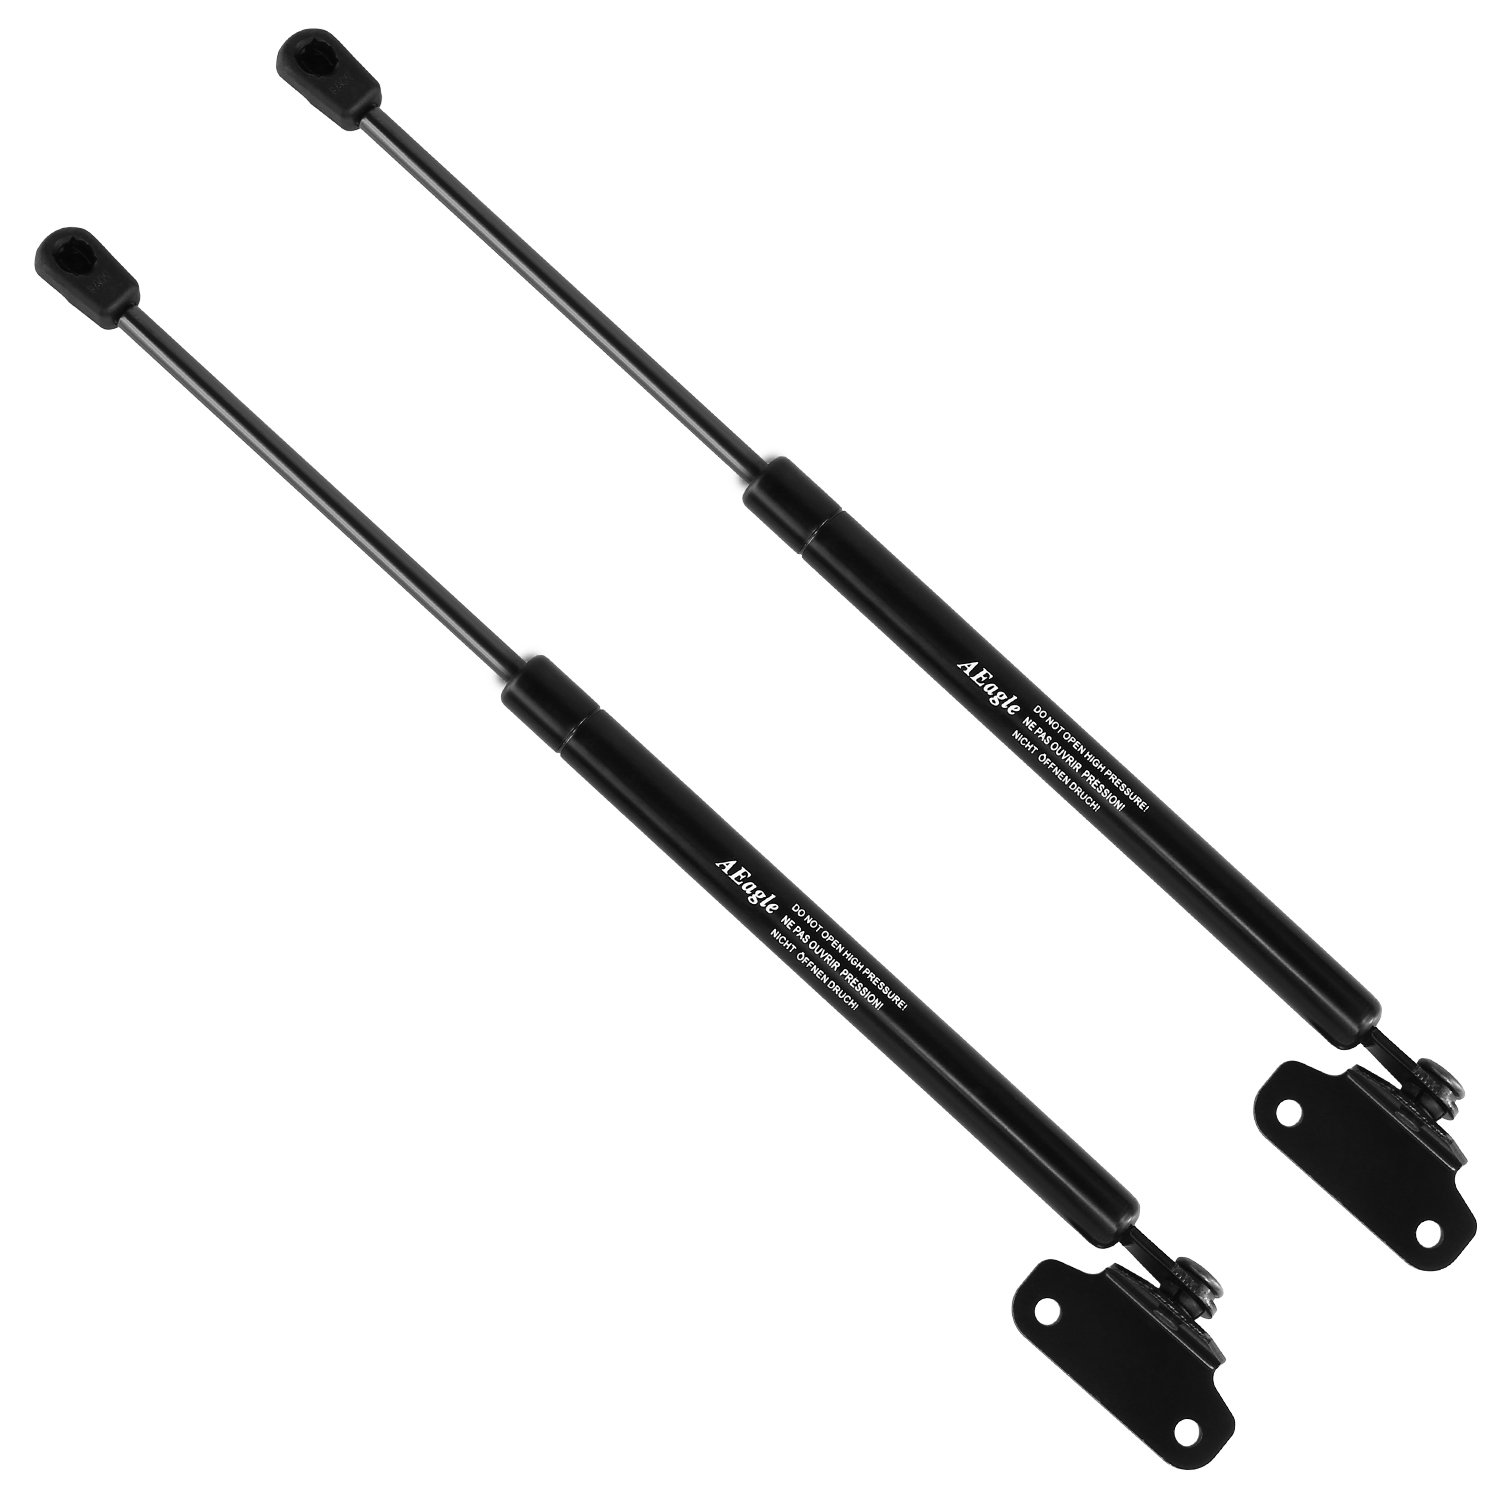 Hood Lift Supports Struts Shock For 2003-2007 Honda Accord Pack of 2